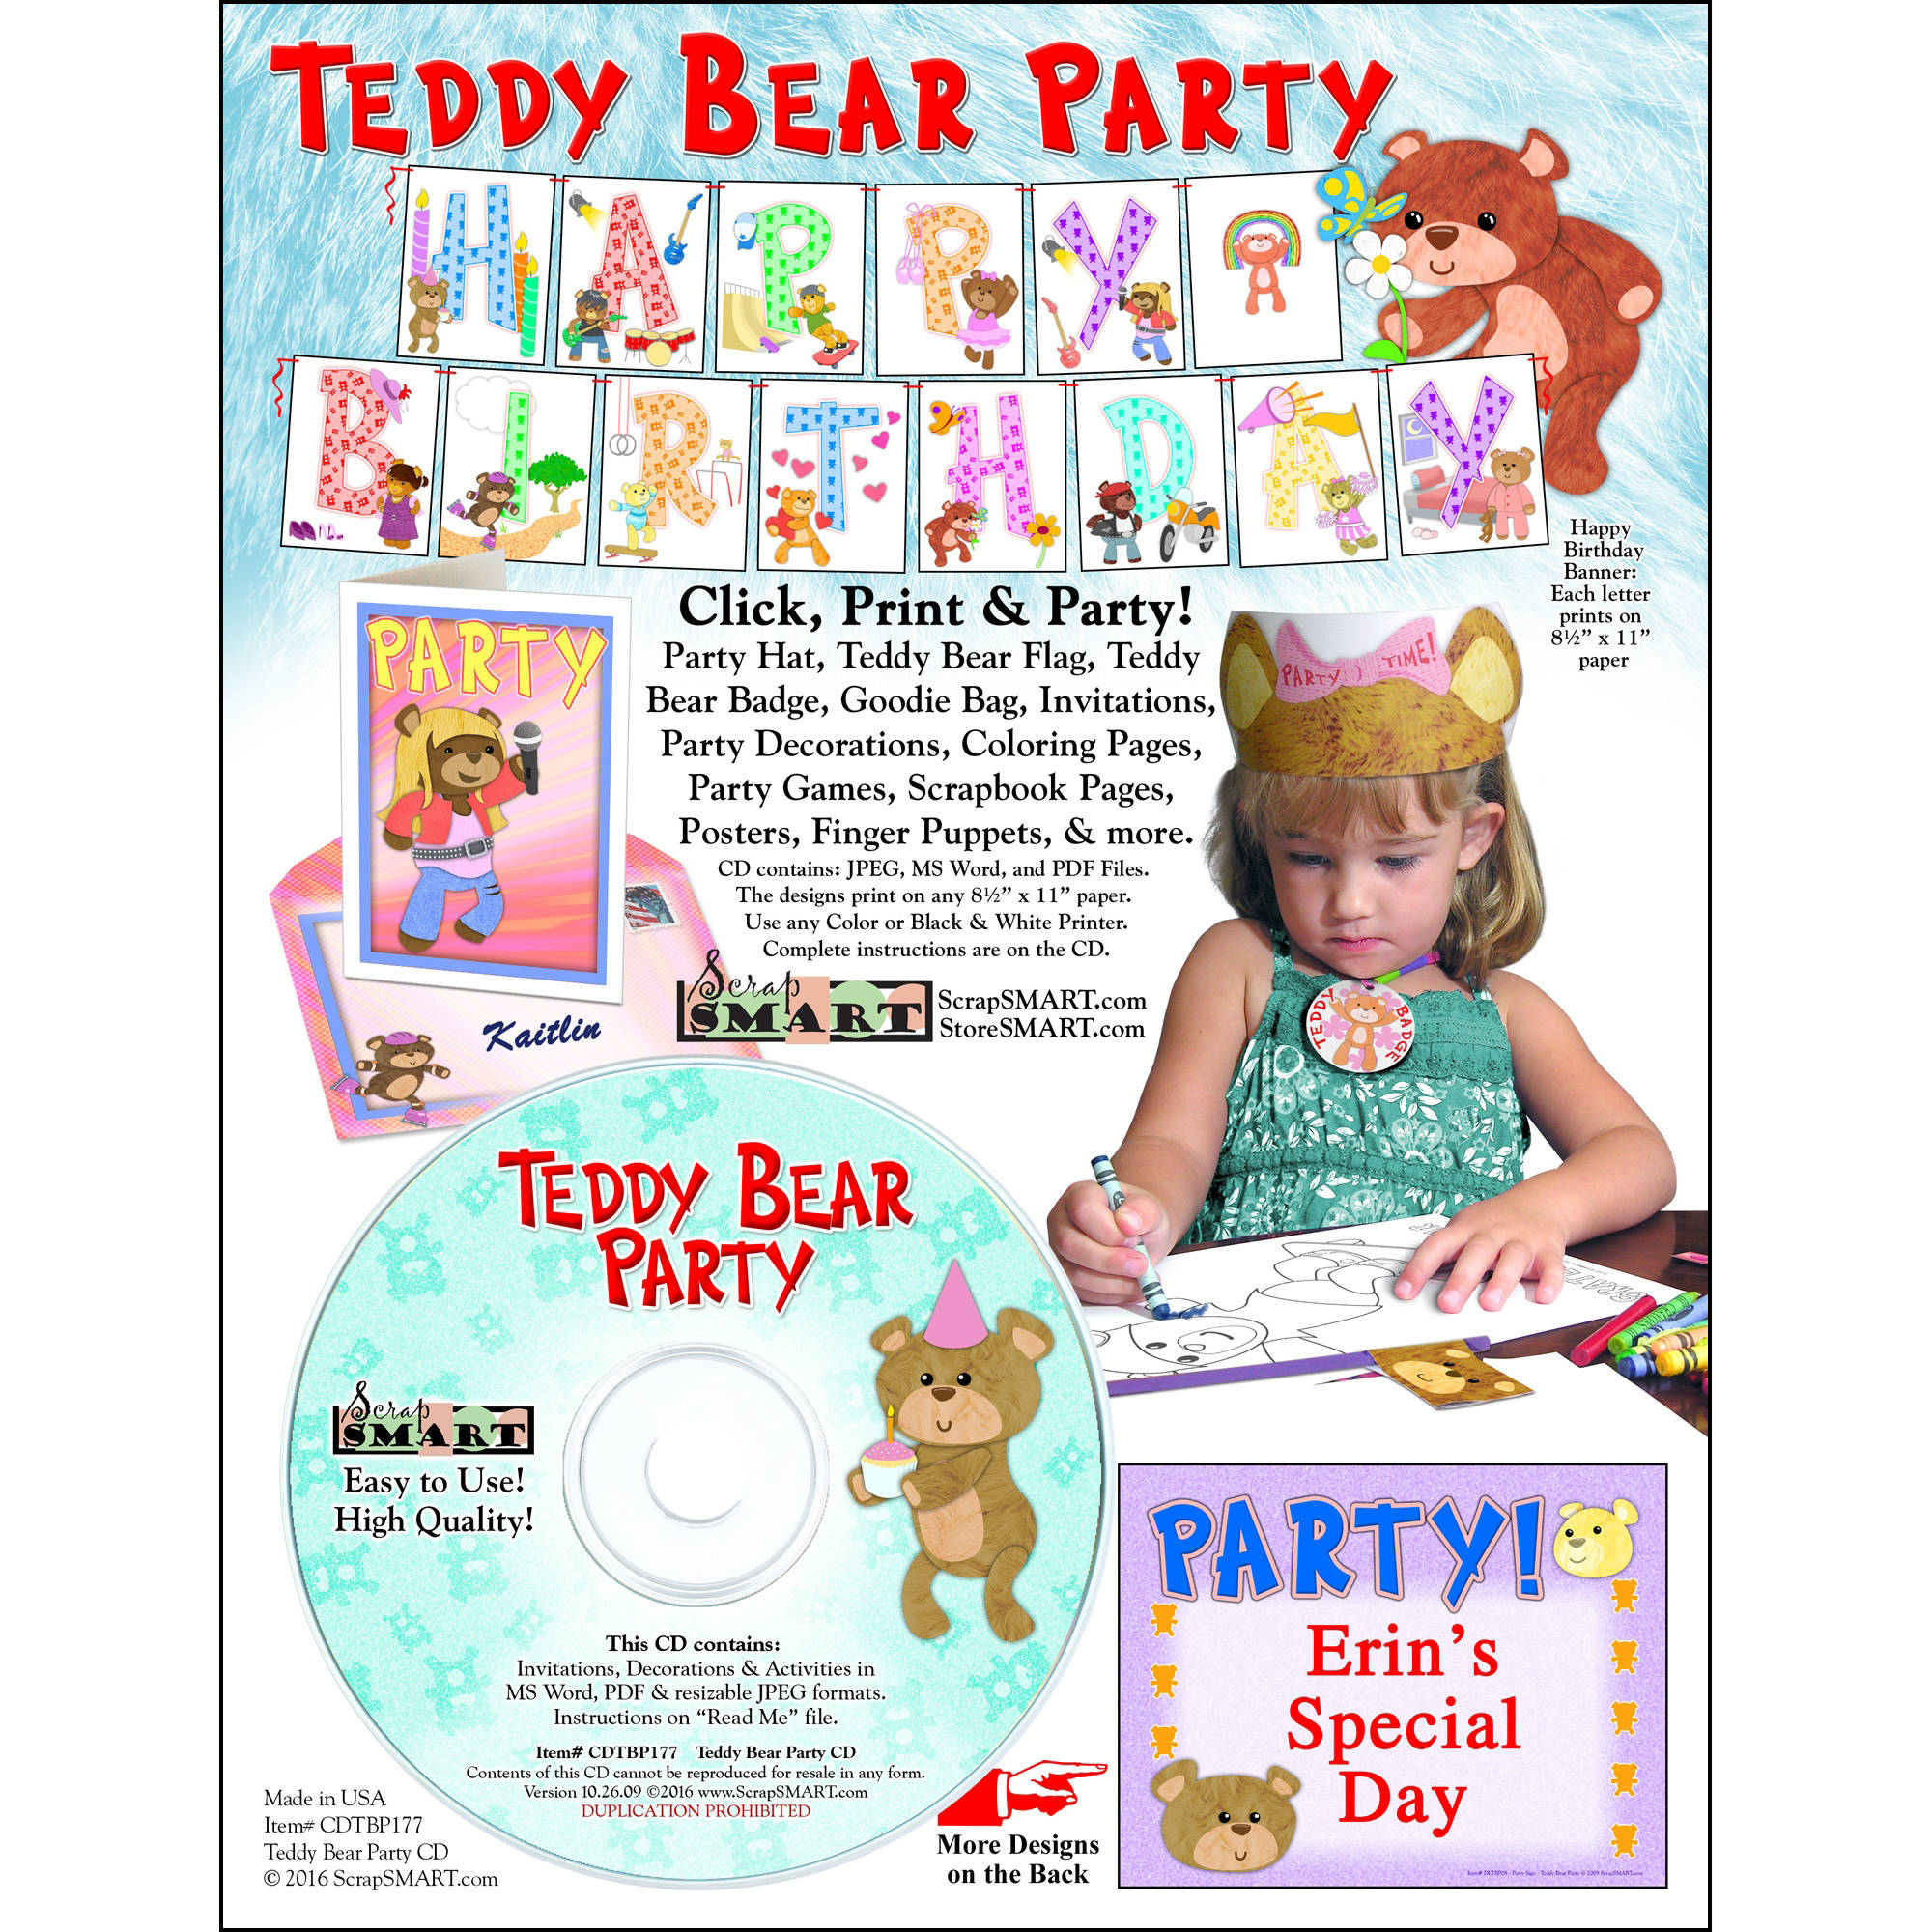 ScrapSMART Teddy Bear Party: Decorations, Crafts, Scrapbook and Coloring Pages CD-ROM